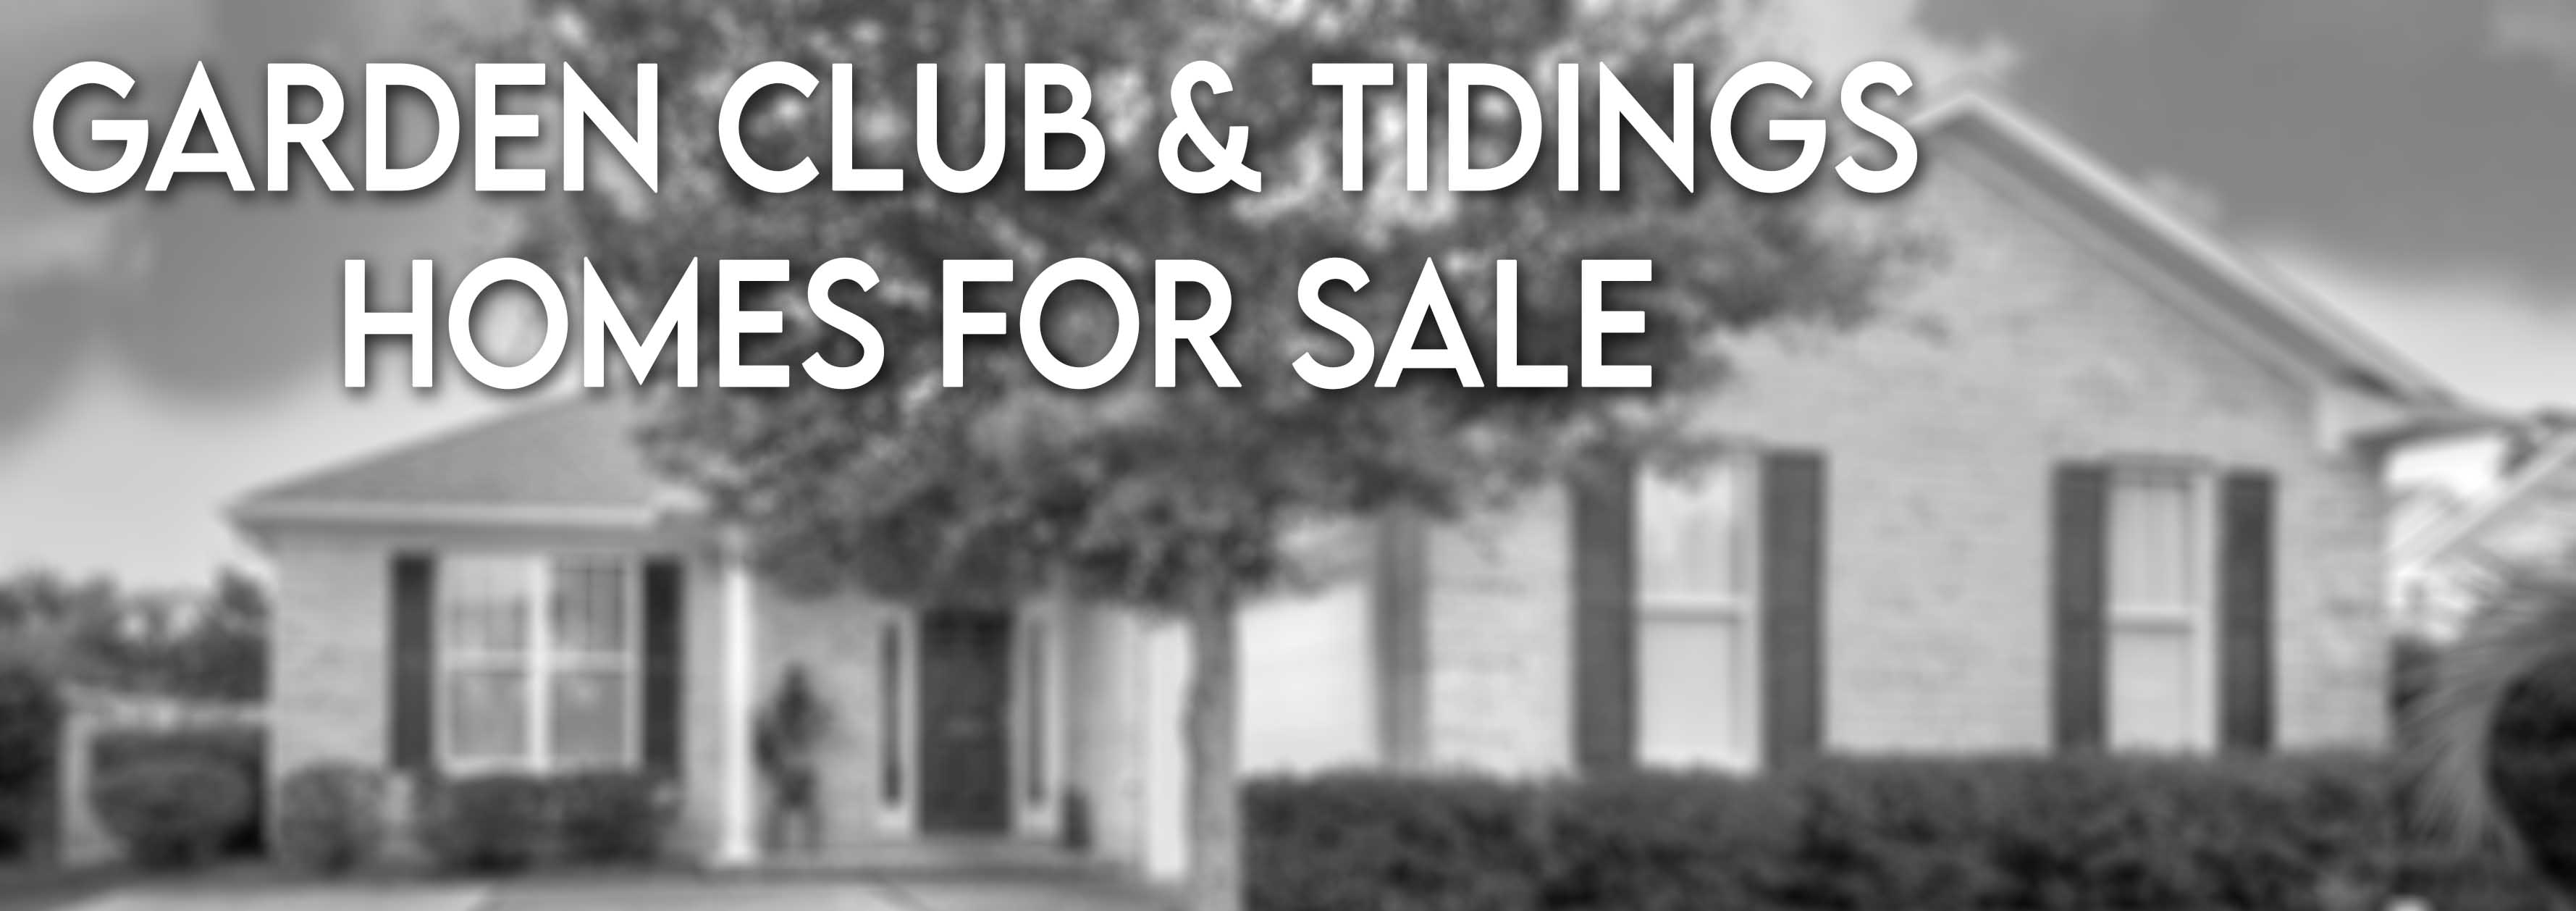 Homes for Sale Garden Club Way and Tidings Road